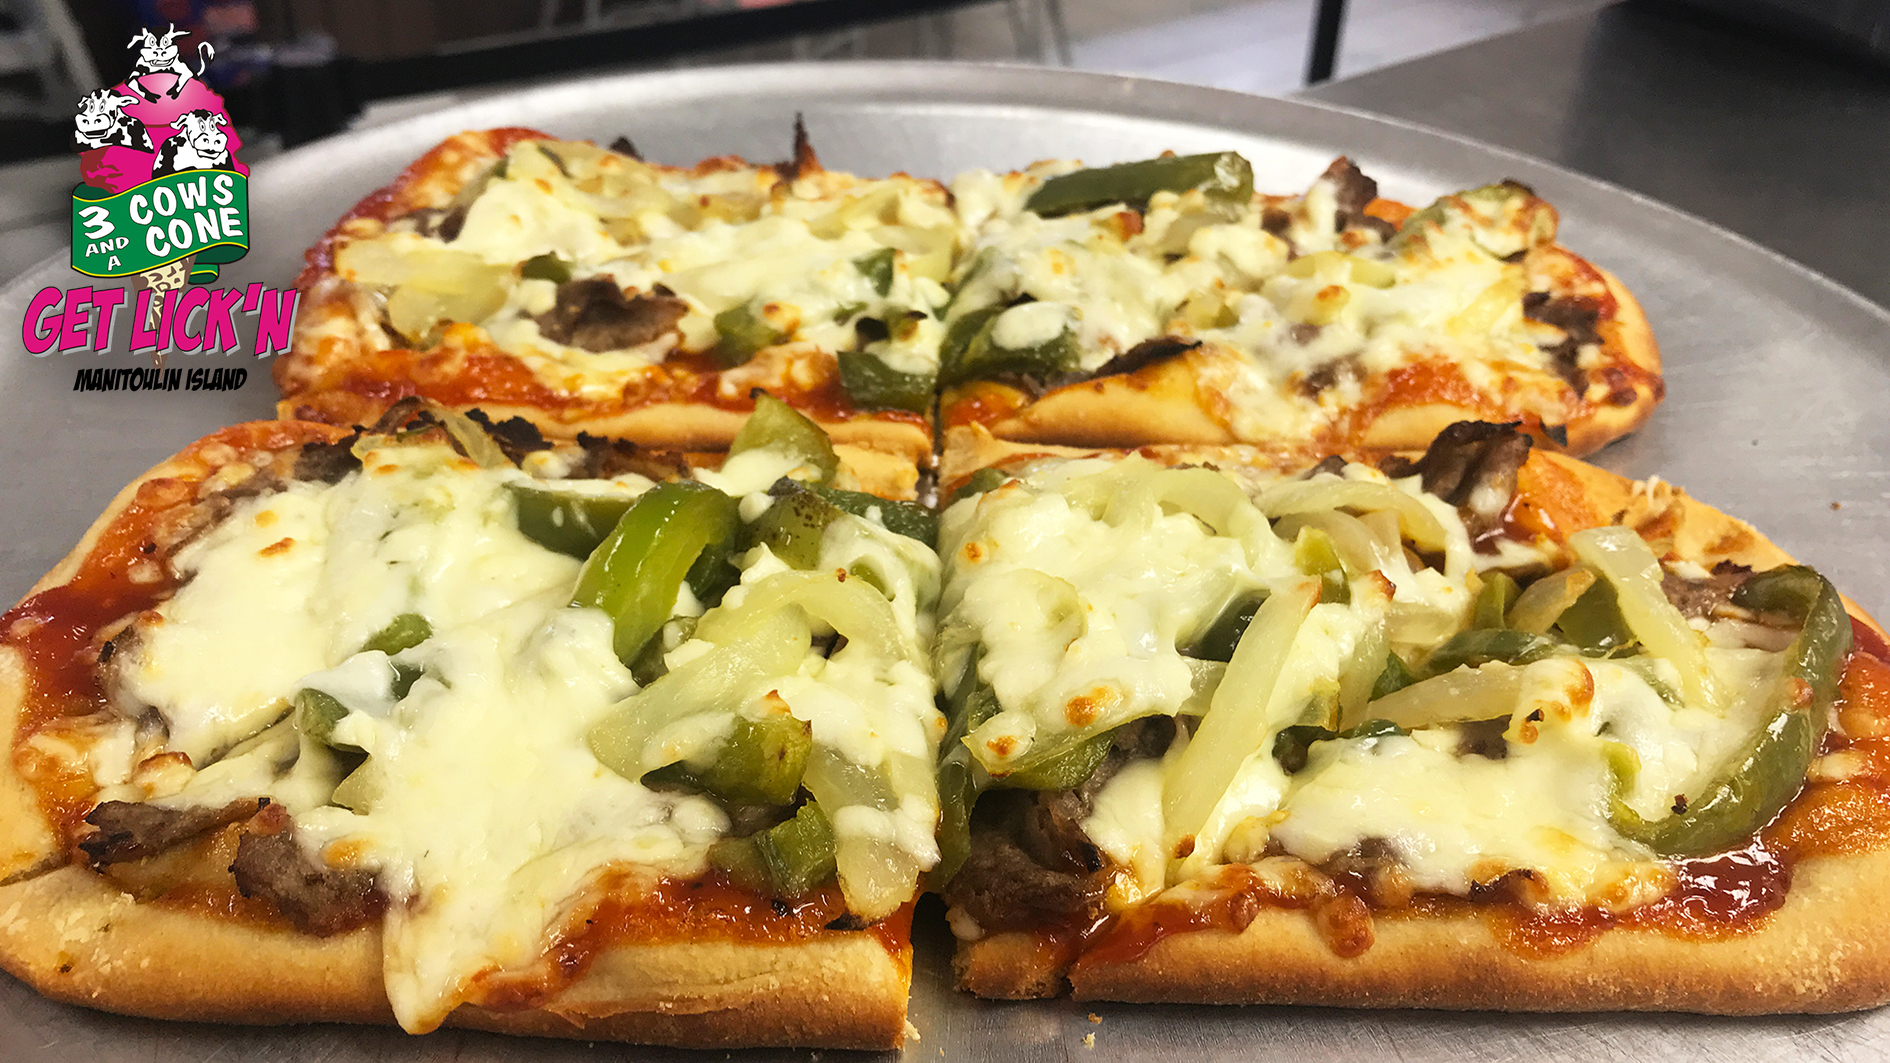 3 Cows and a Cone Philly Cheese flatbread.  Made with BBQ sauce, beef slices, green peppers, onions, and mozzarella